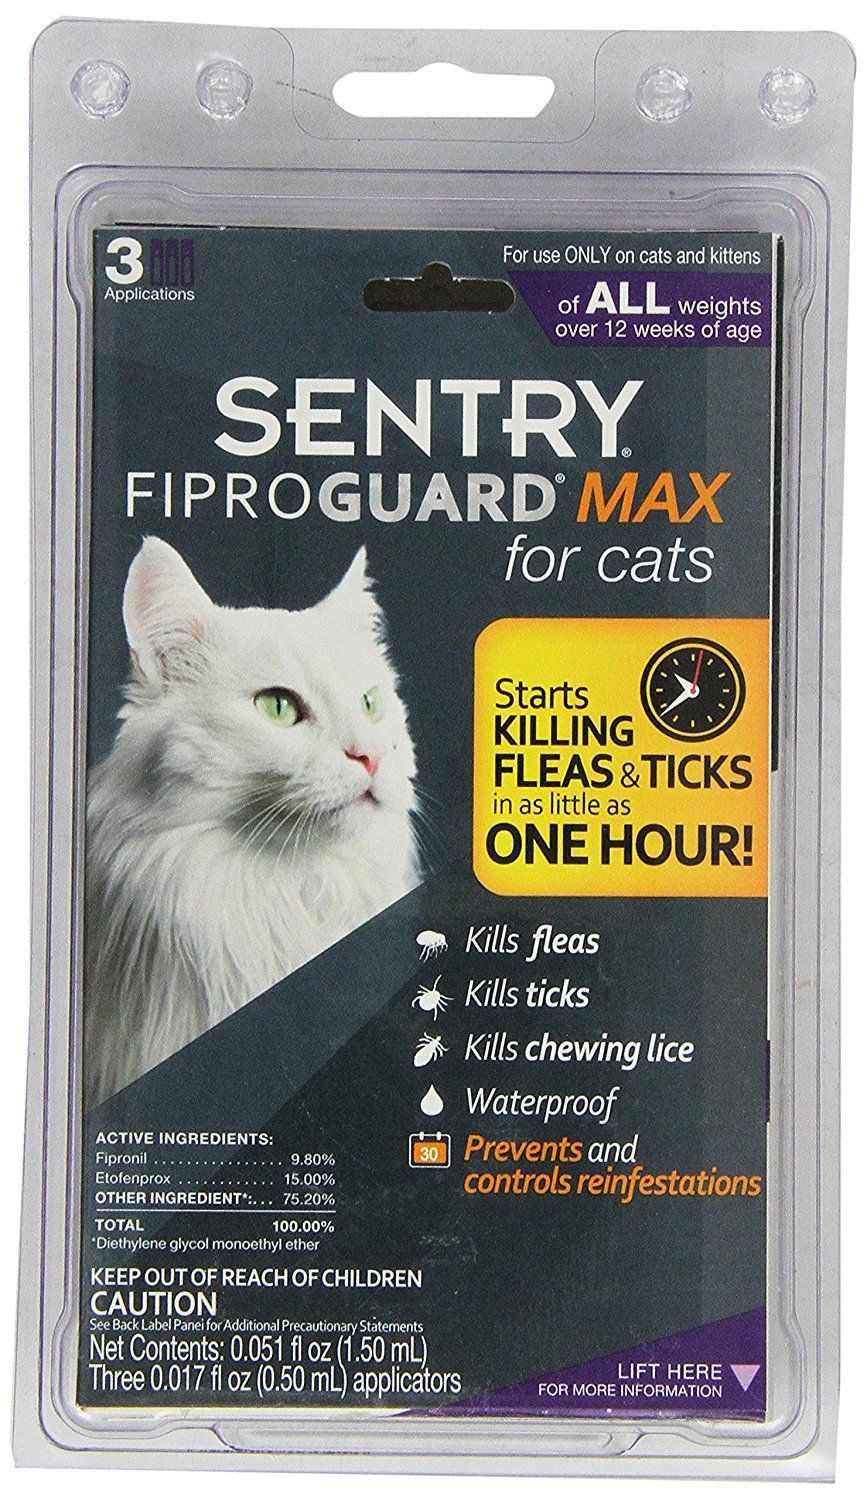 Sentry Fiproguard Max For Cats All Weights Over 12 Weeks Old Cats Accessories With Images Cat Fleas Fleas Flea And Tick